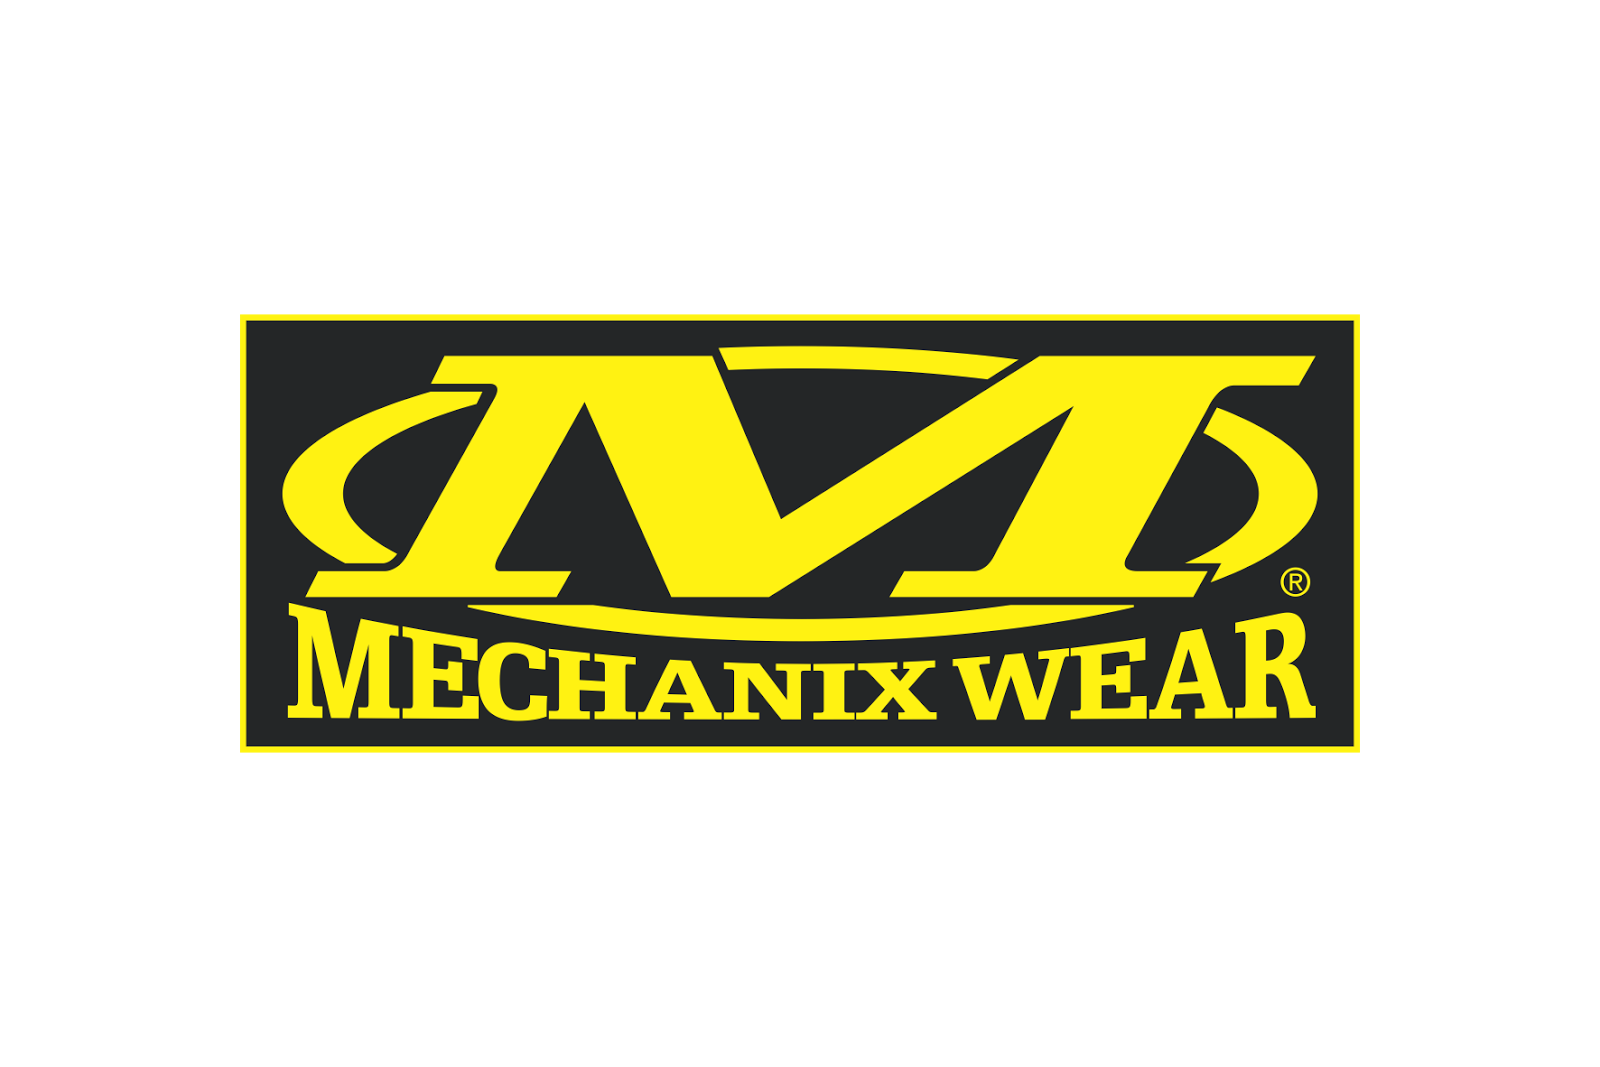 Mechanix Wear Logo Mechanix Wear Logo